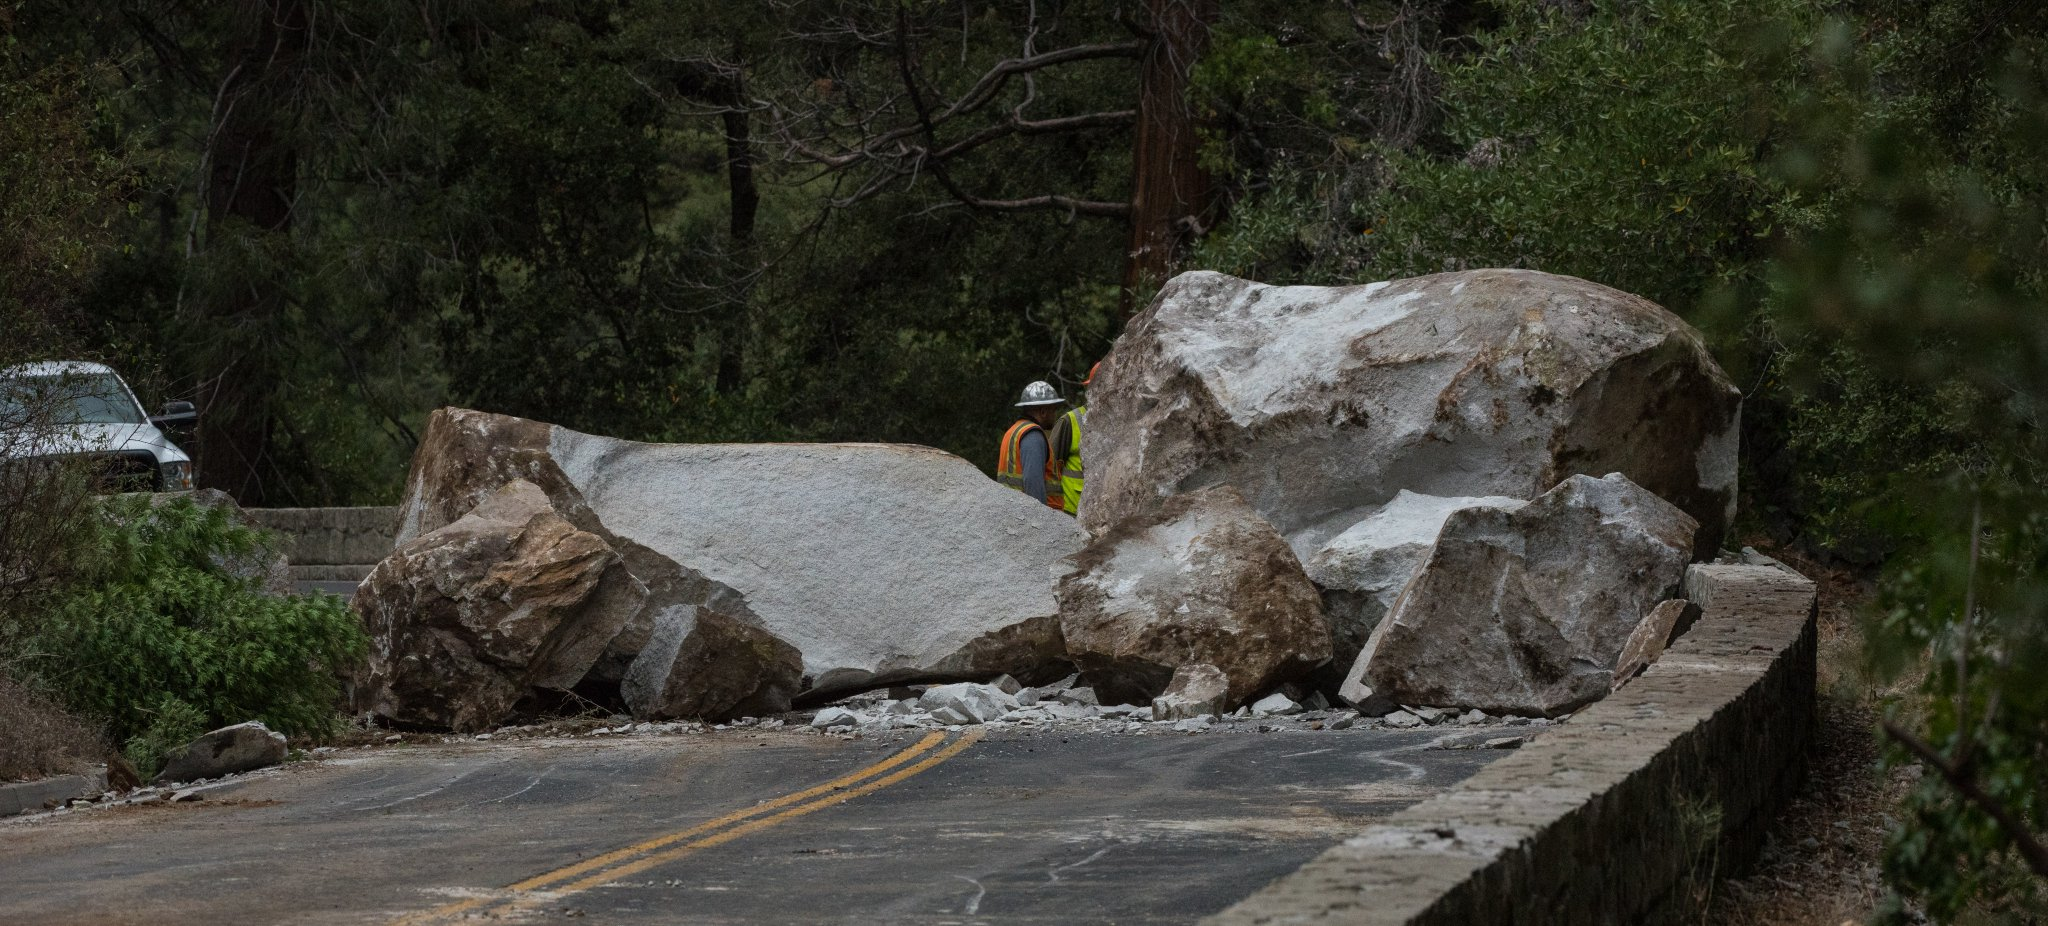 Highway 140 to Reopen in Yosemite National Park